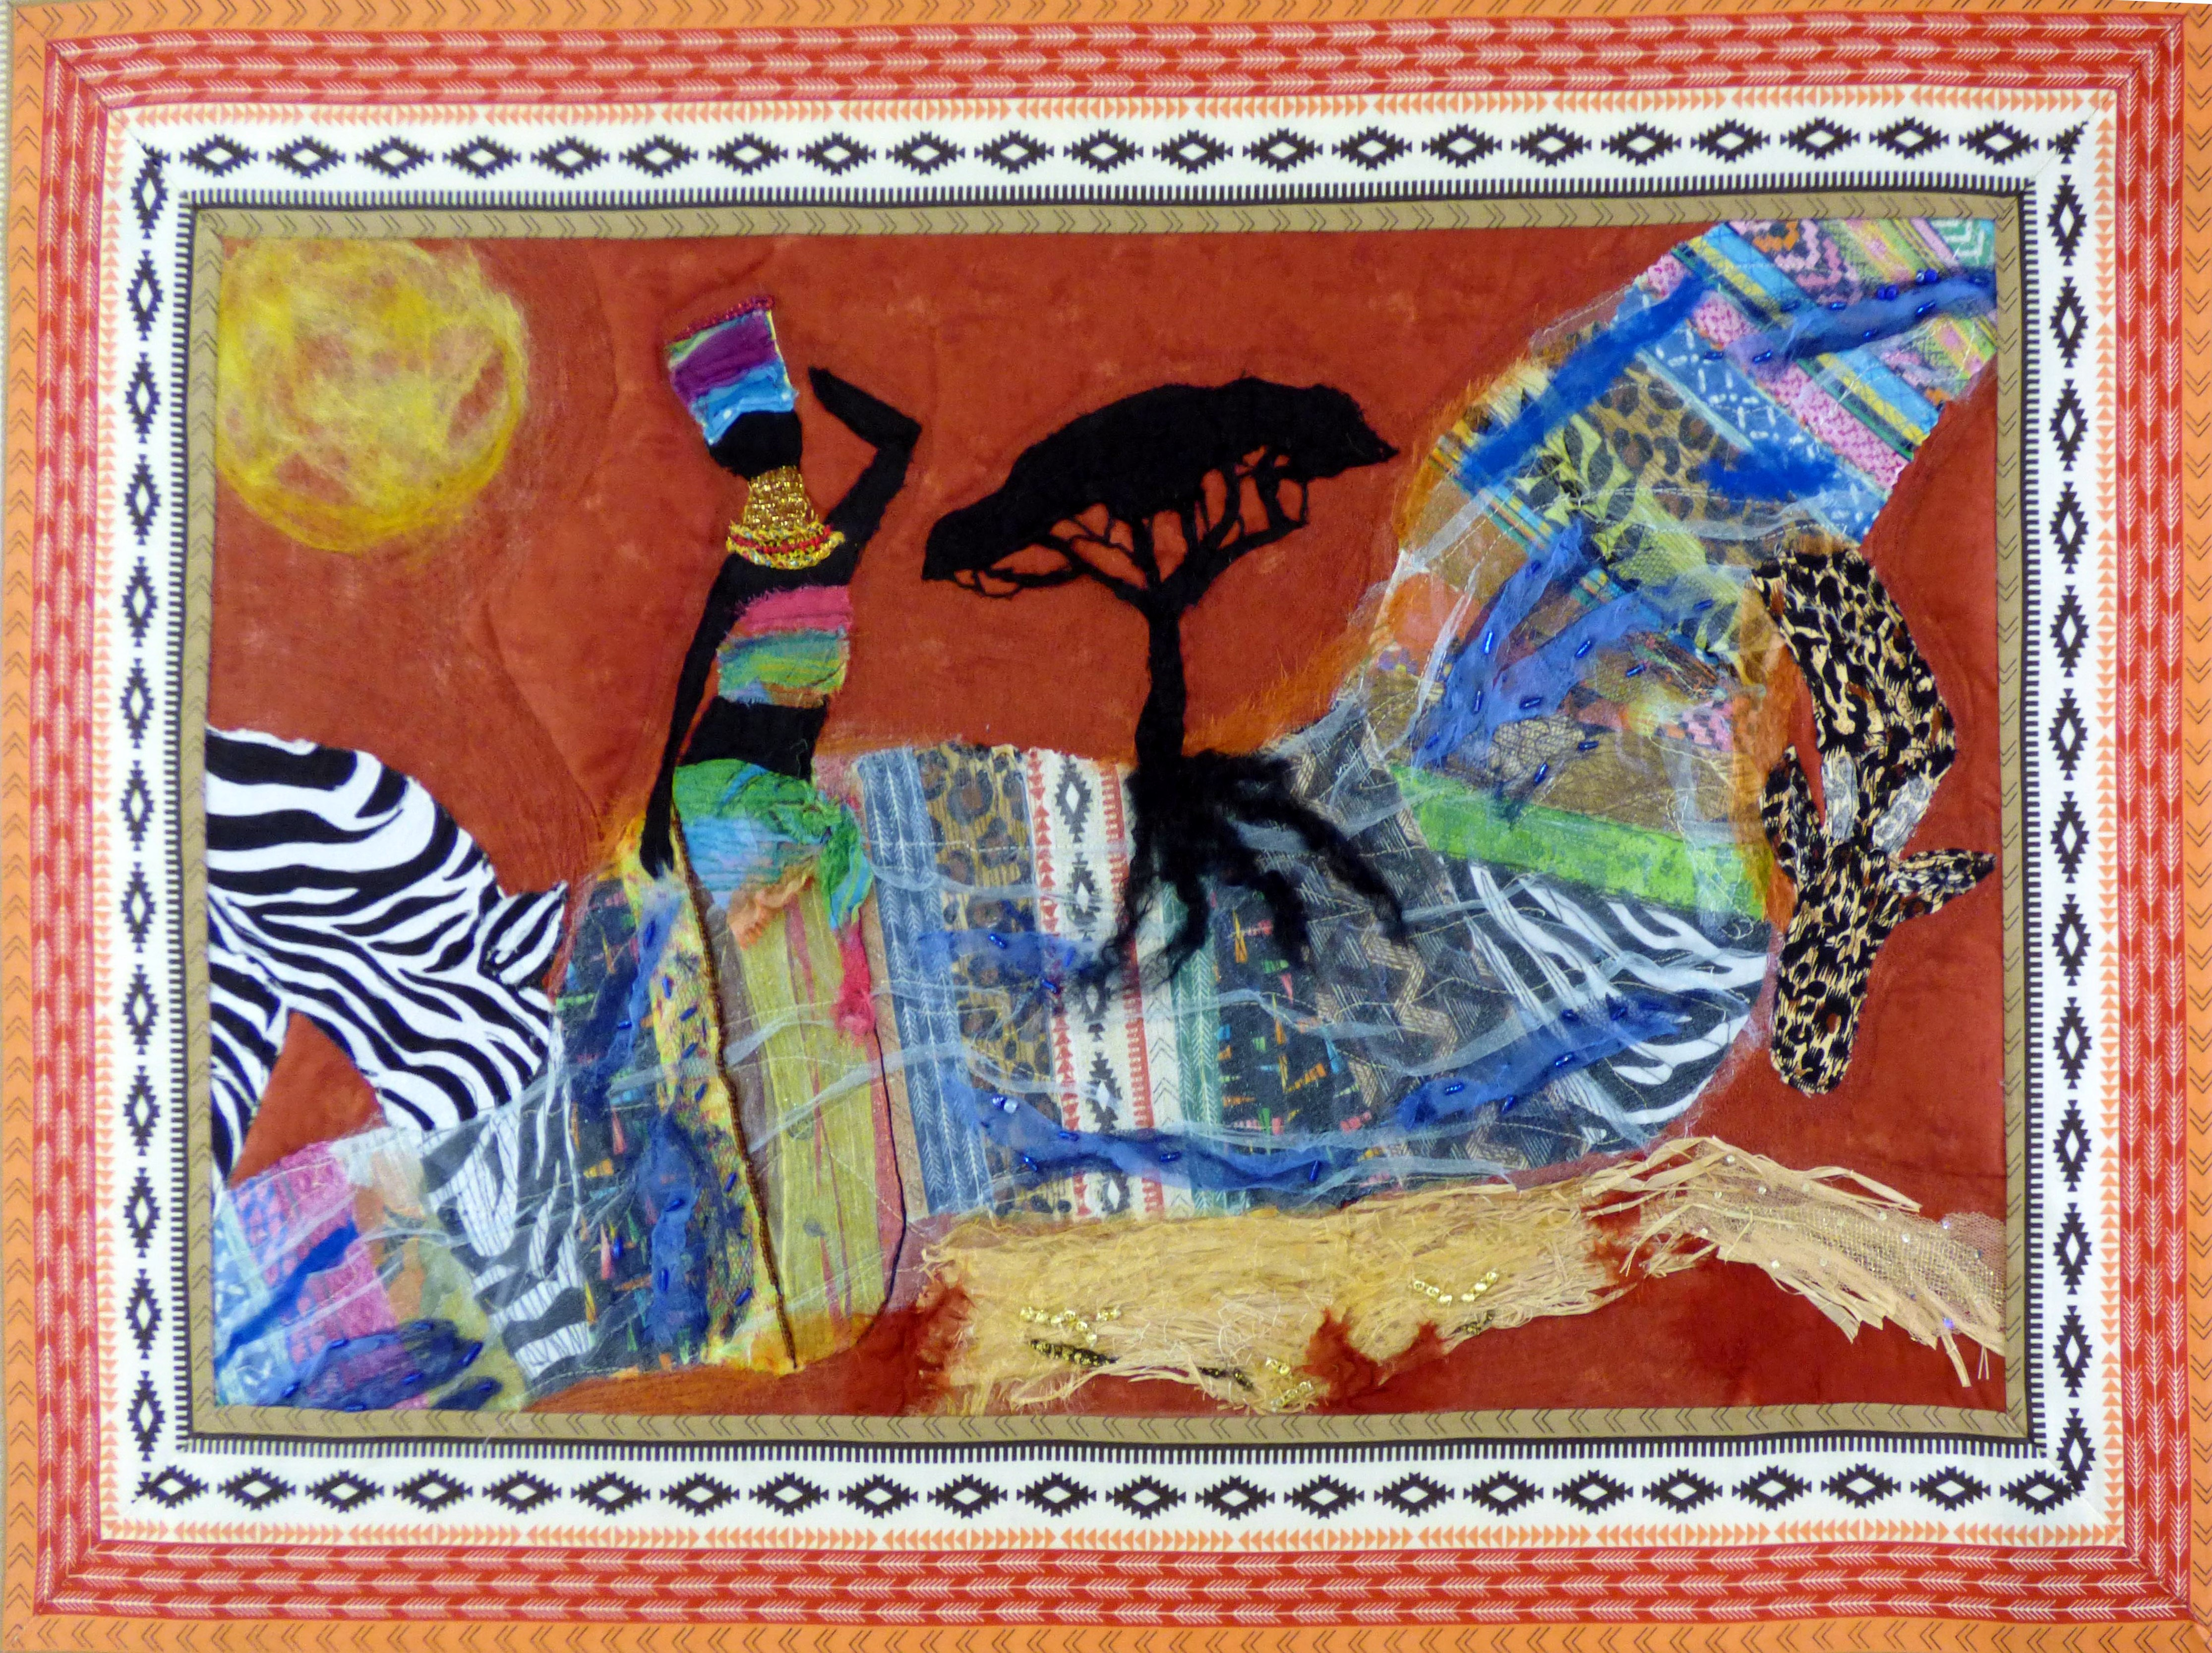 RIVER OF LIFE by Hilary Atherage, N.Wales EG, applique aith hand & machine embroidery